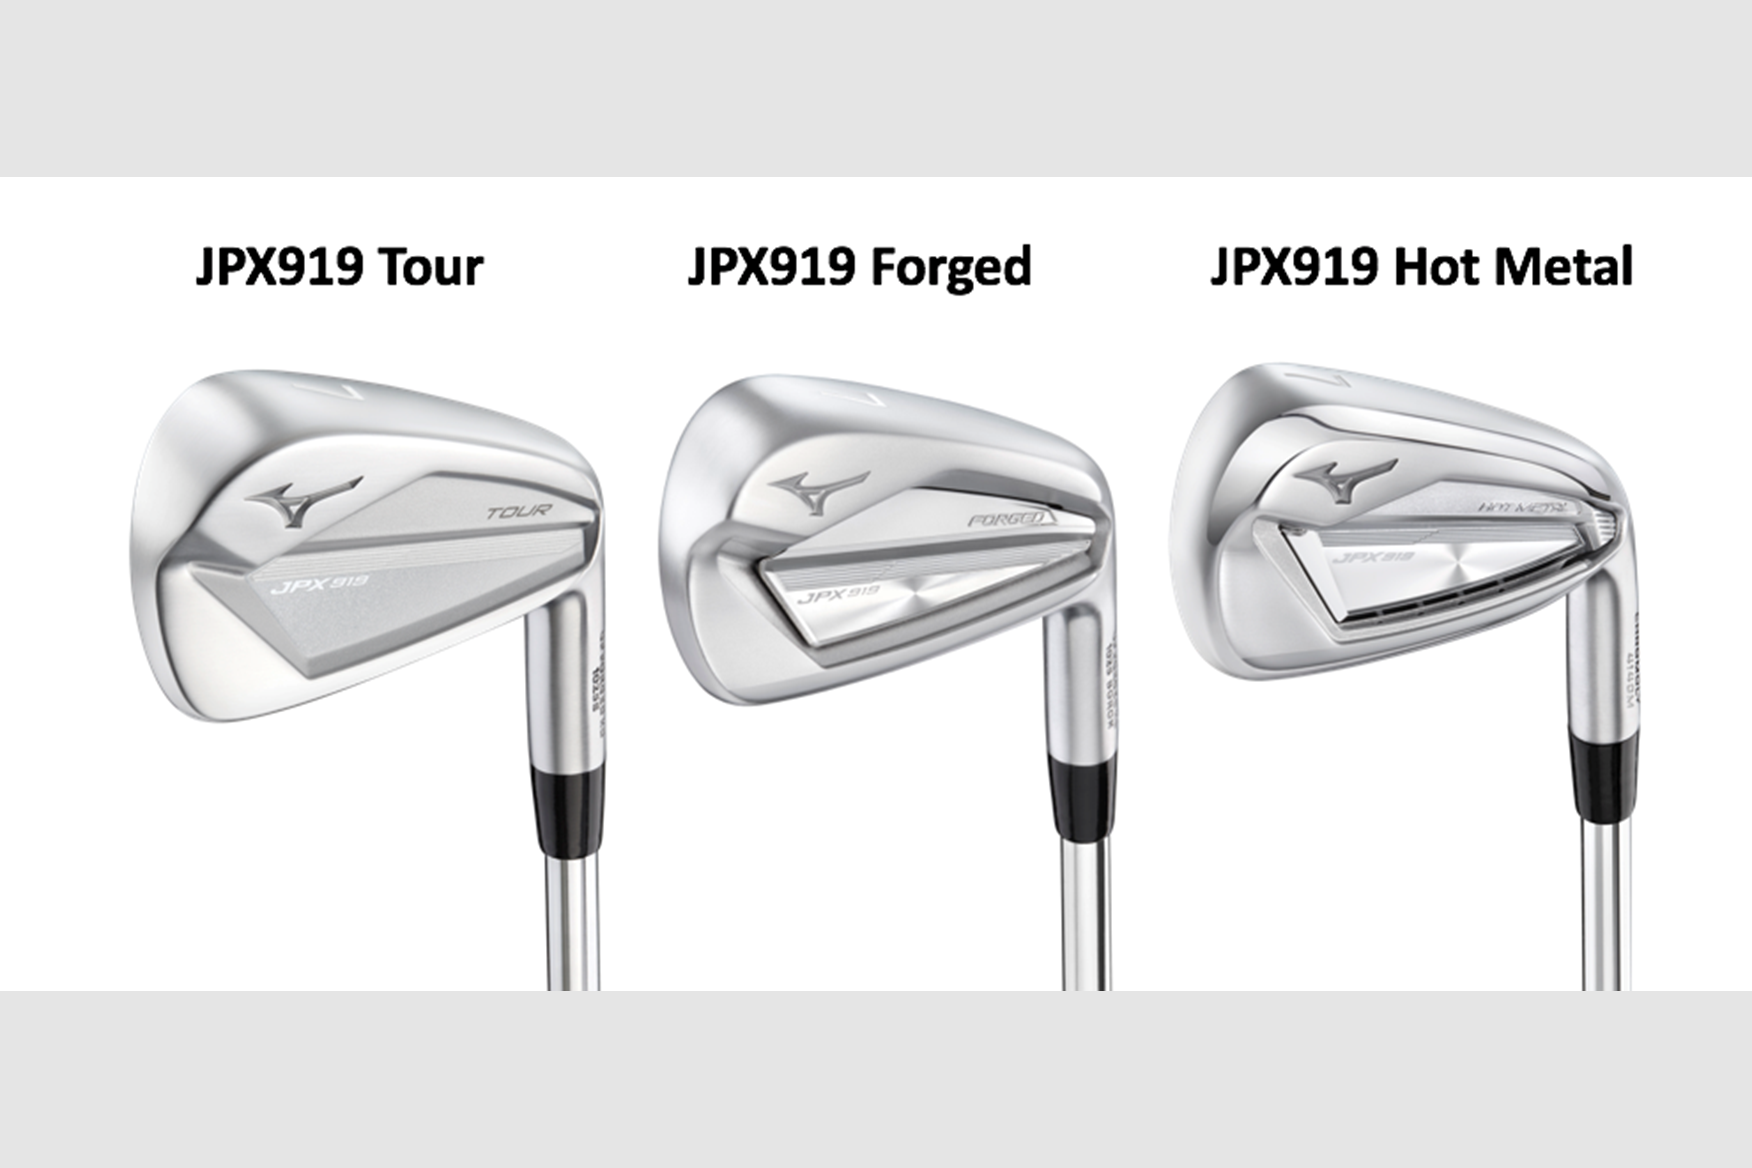 97337eebdedb Mizuno JPX919 Forged Iron Review | Equipment Reviews | Today's Golfer